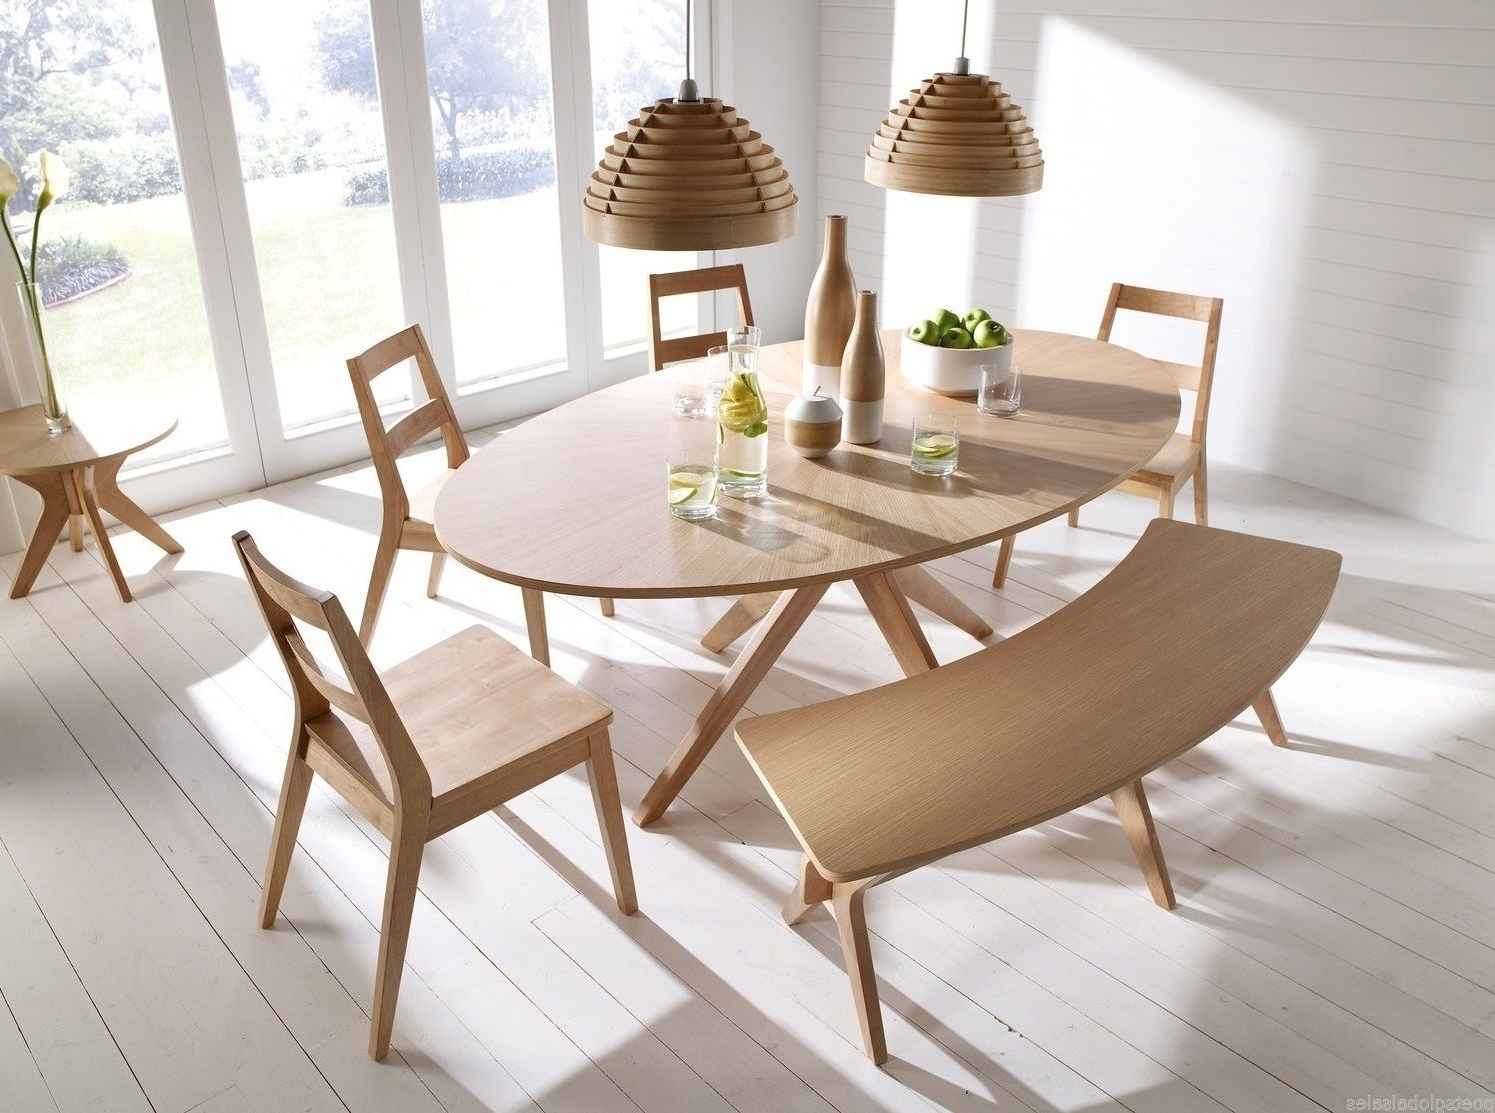 Most Recent Wooden Dining Table Oak Kitchen Living Room Wood Rustic Oval Regarding Ebay Dining Suites (View 10 of 25)